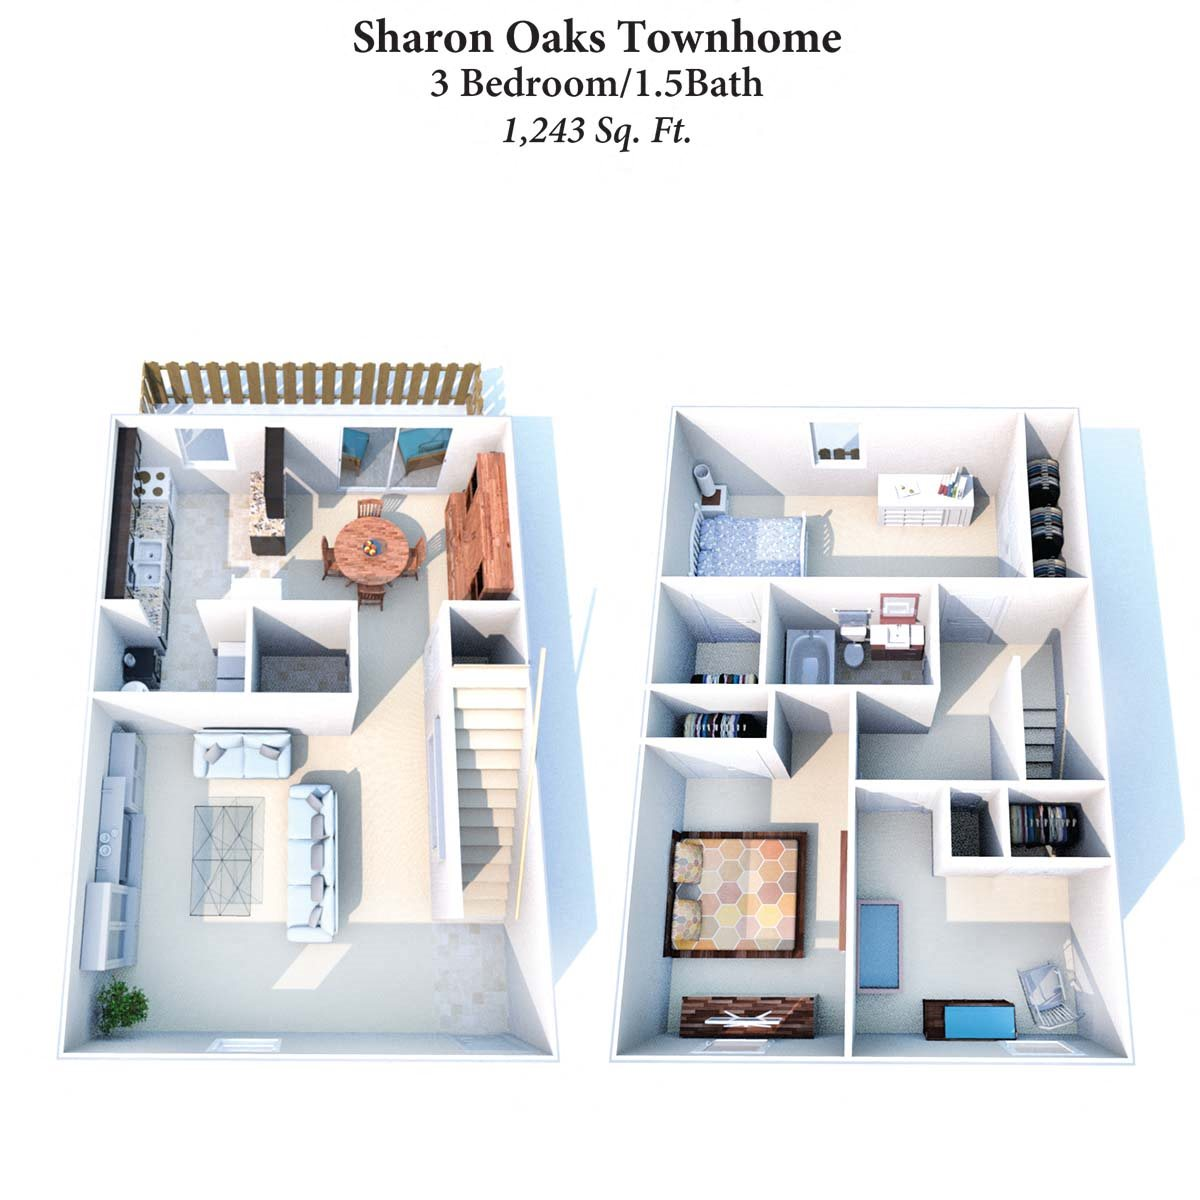 3B/1.5B Sharon Oaks Townhome 1,243SqFt Floor Plan 10